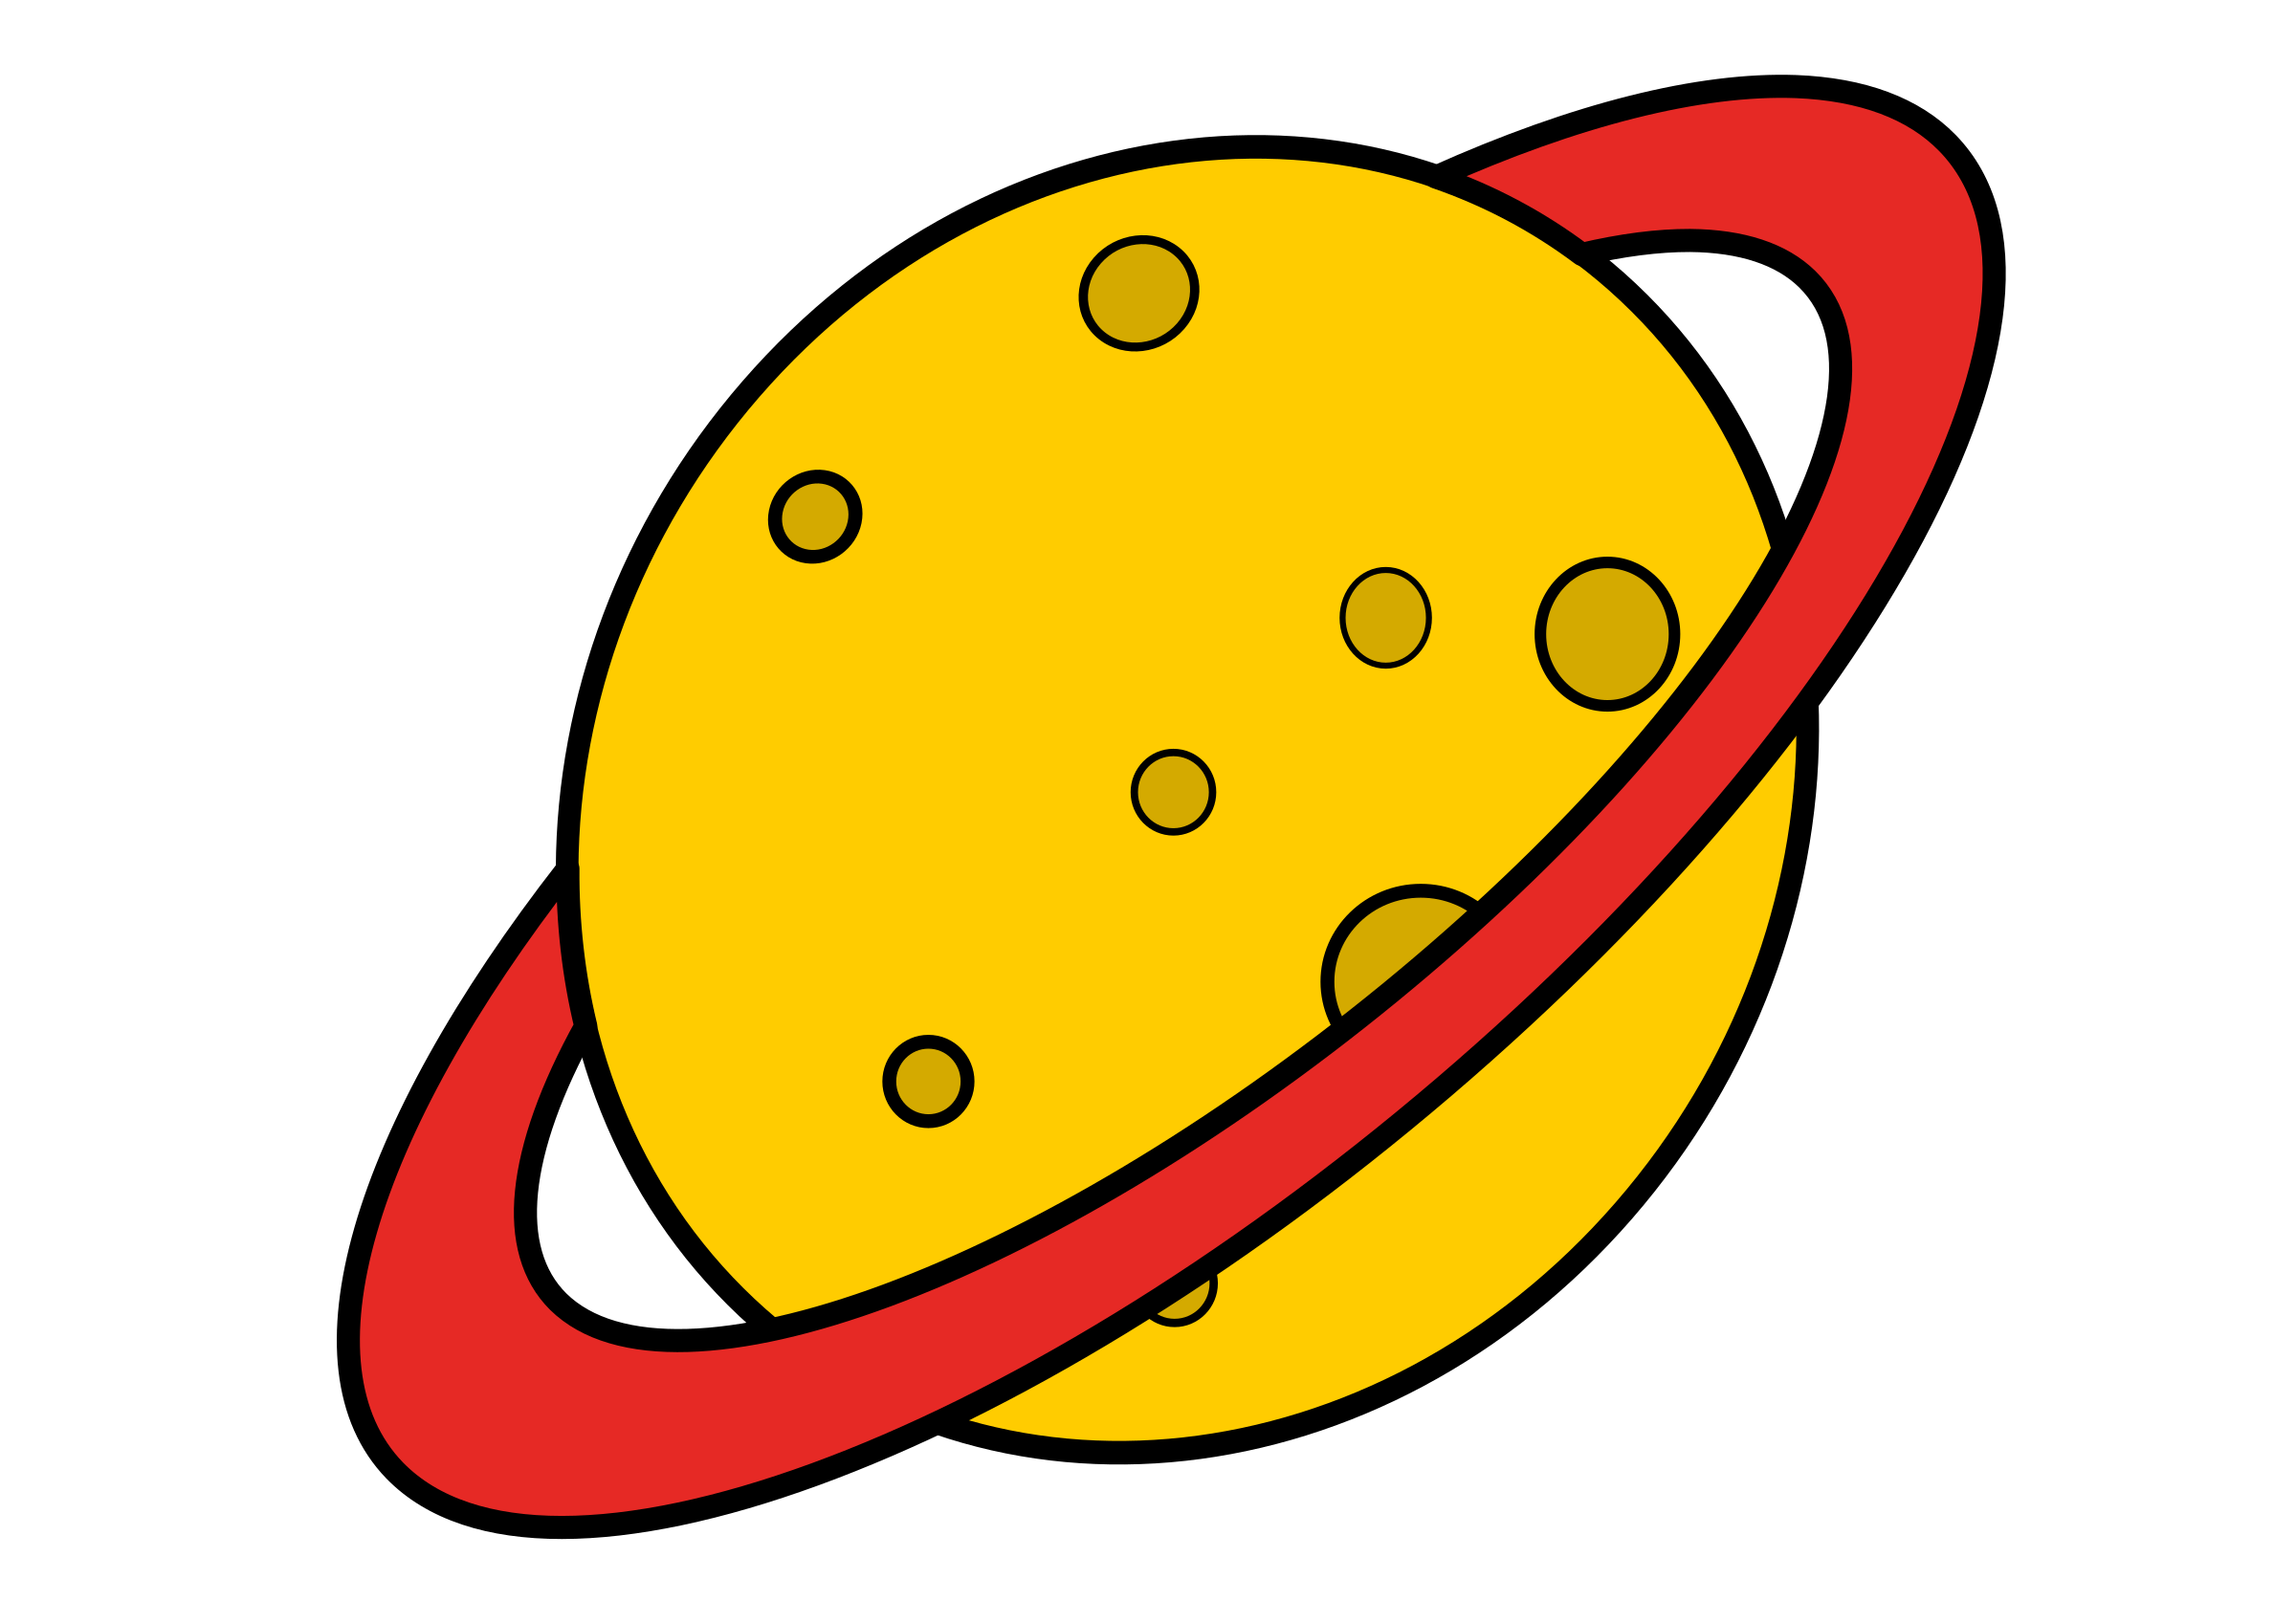 Cartoon planet png. Yellow icons free and